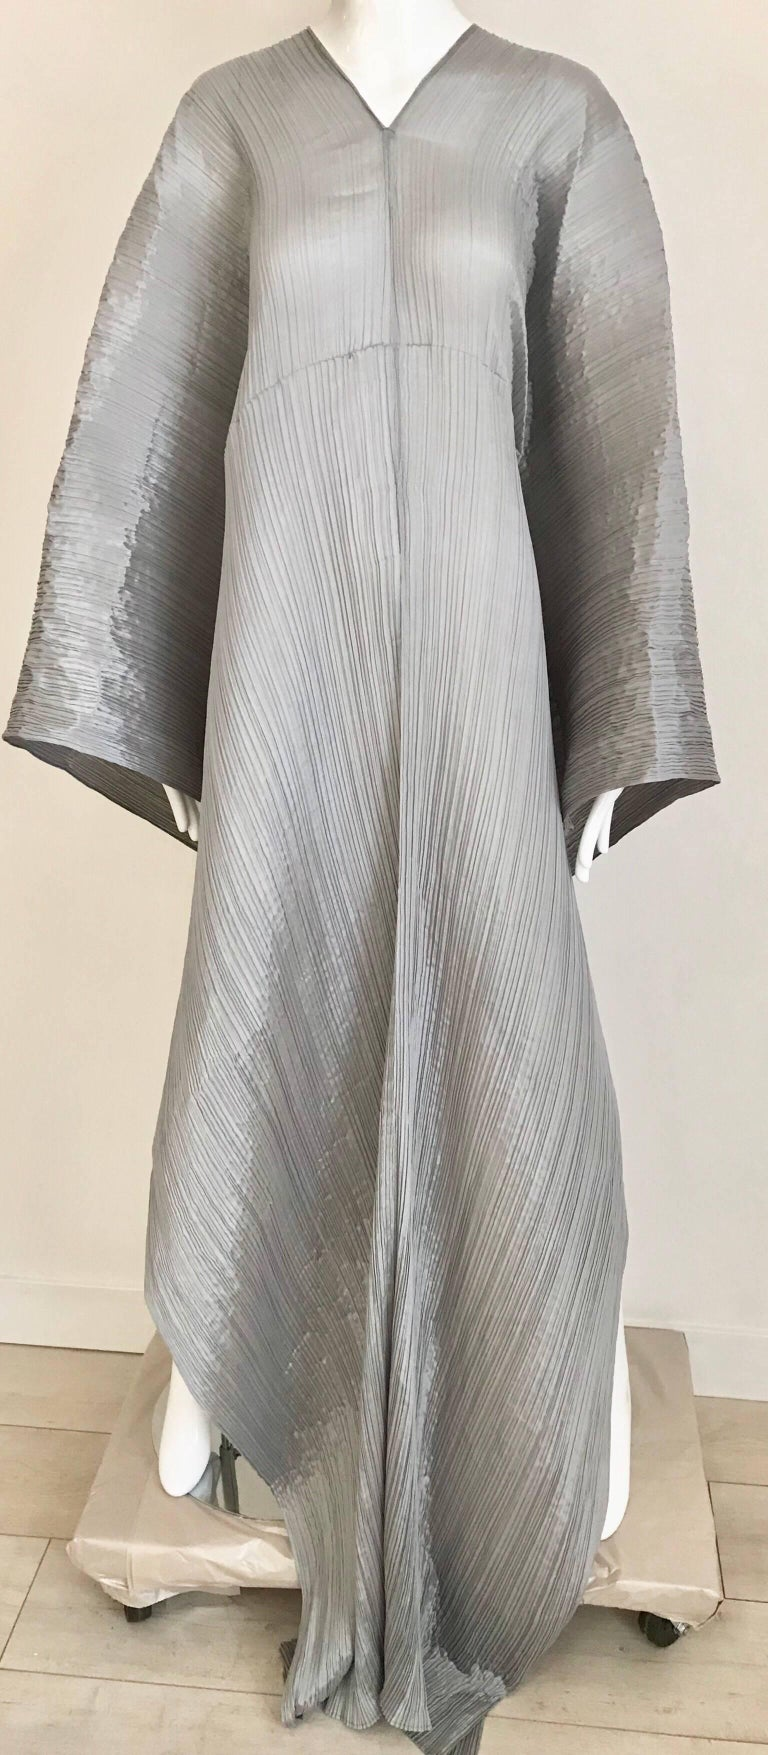 90s Issey miyake silver grey pleat please long and large shawl/ caftan/ dress. Fit size 2/4/6/8/10